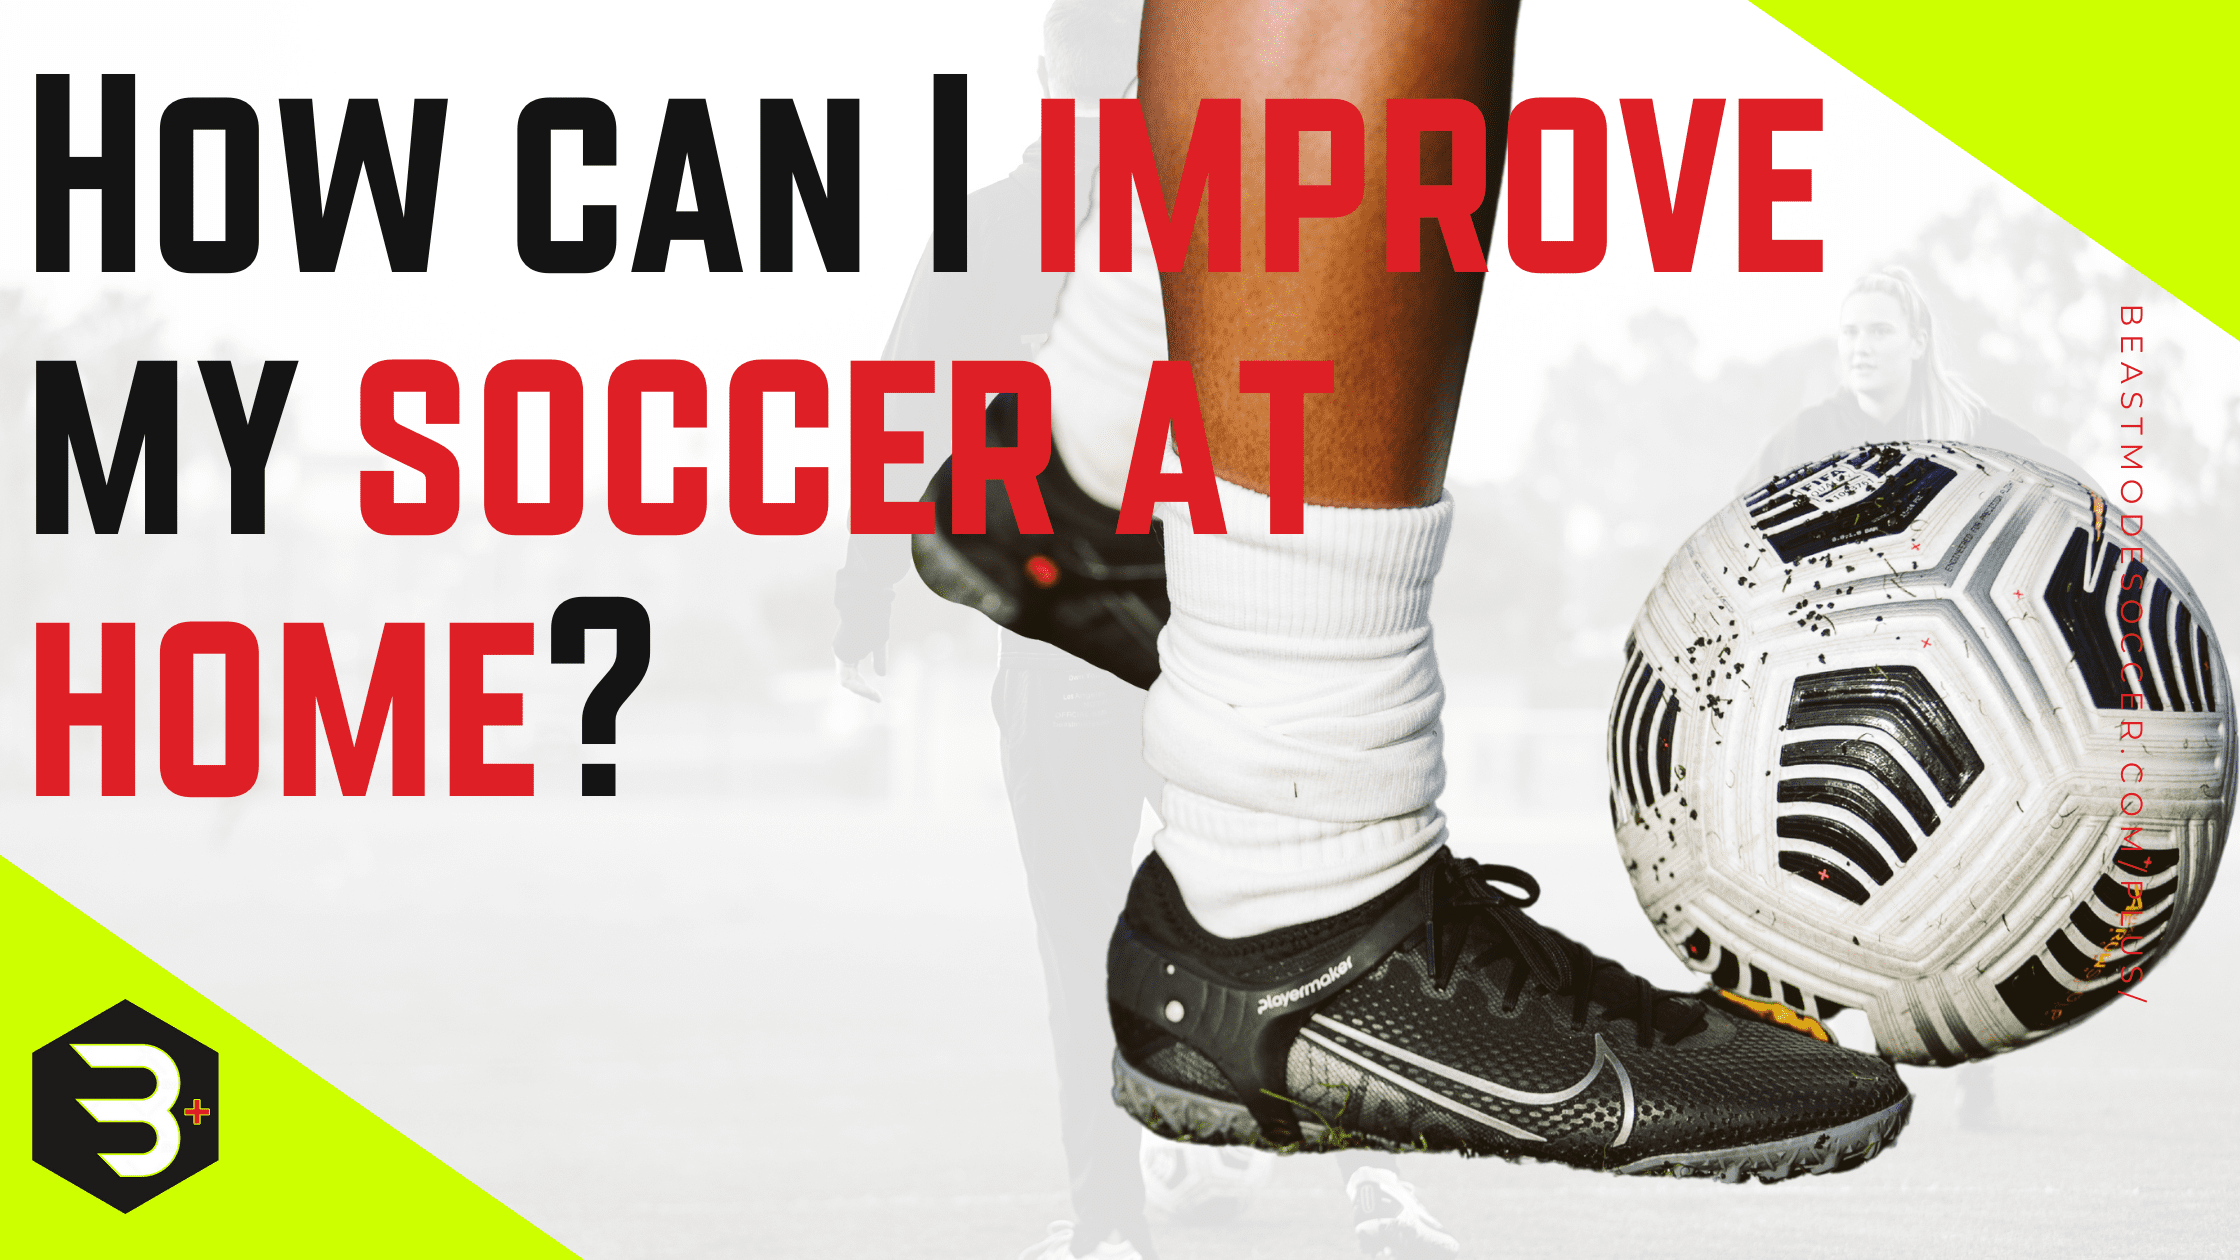 How can I improve my soccer at home?